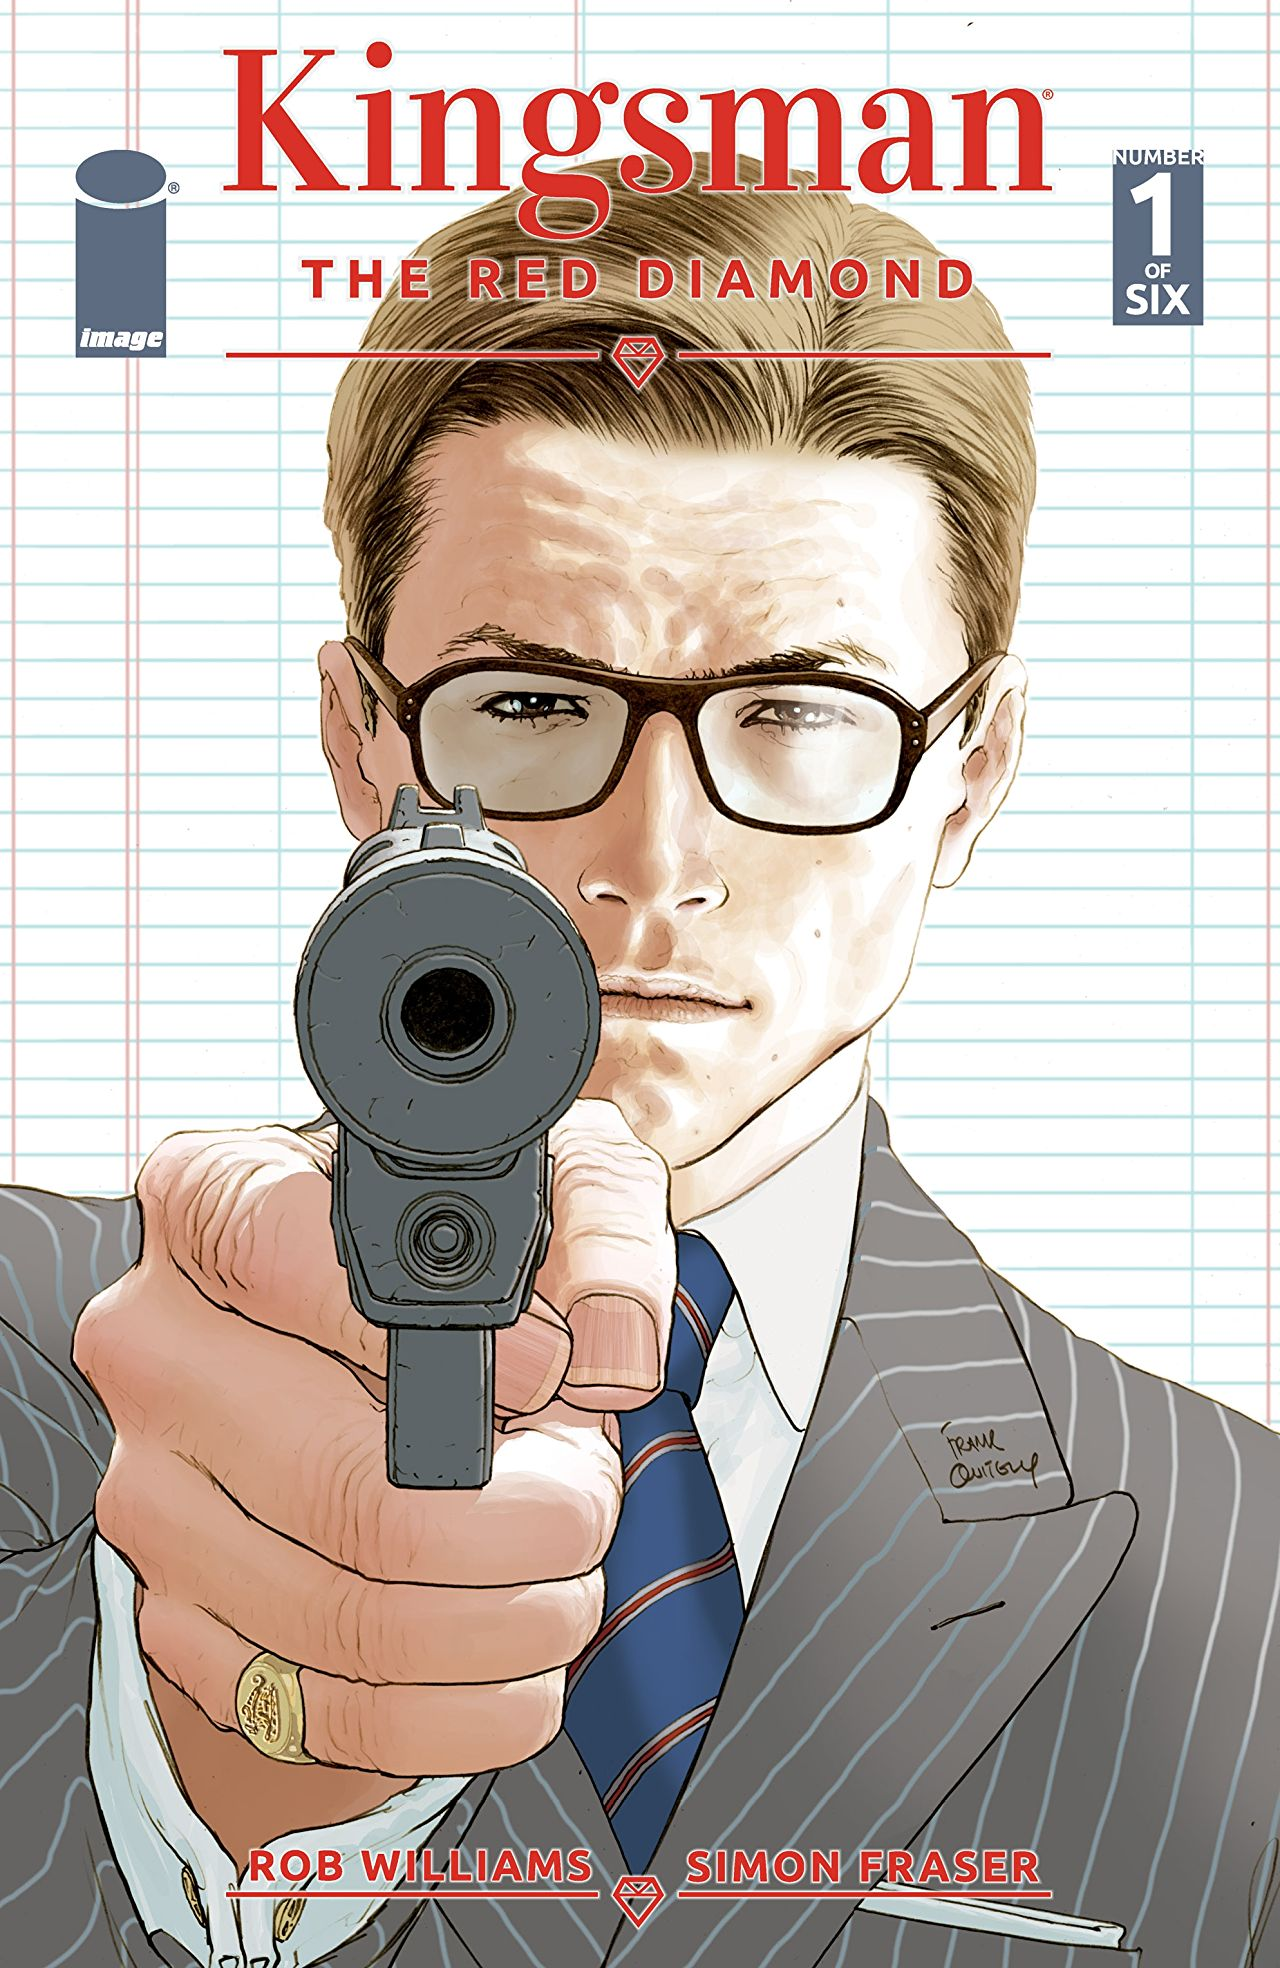 Kingsman: The Red Diamond #1 Review